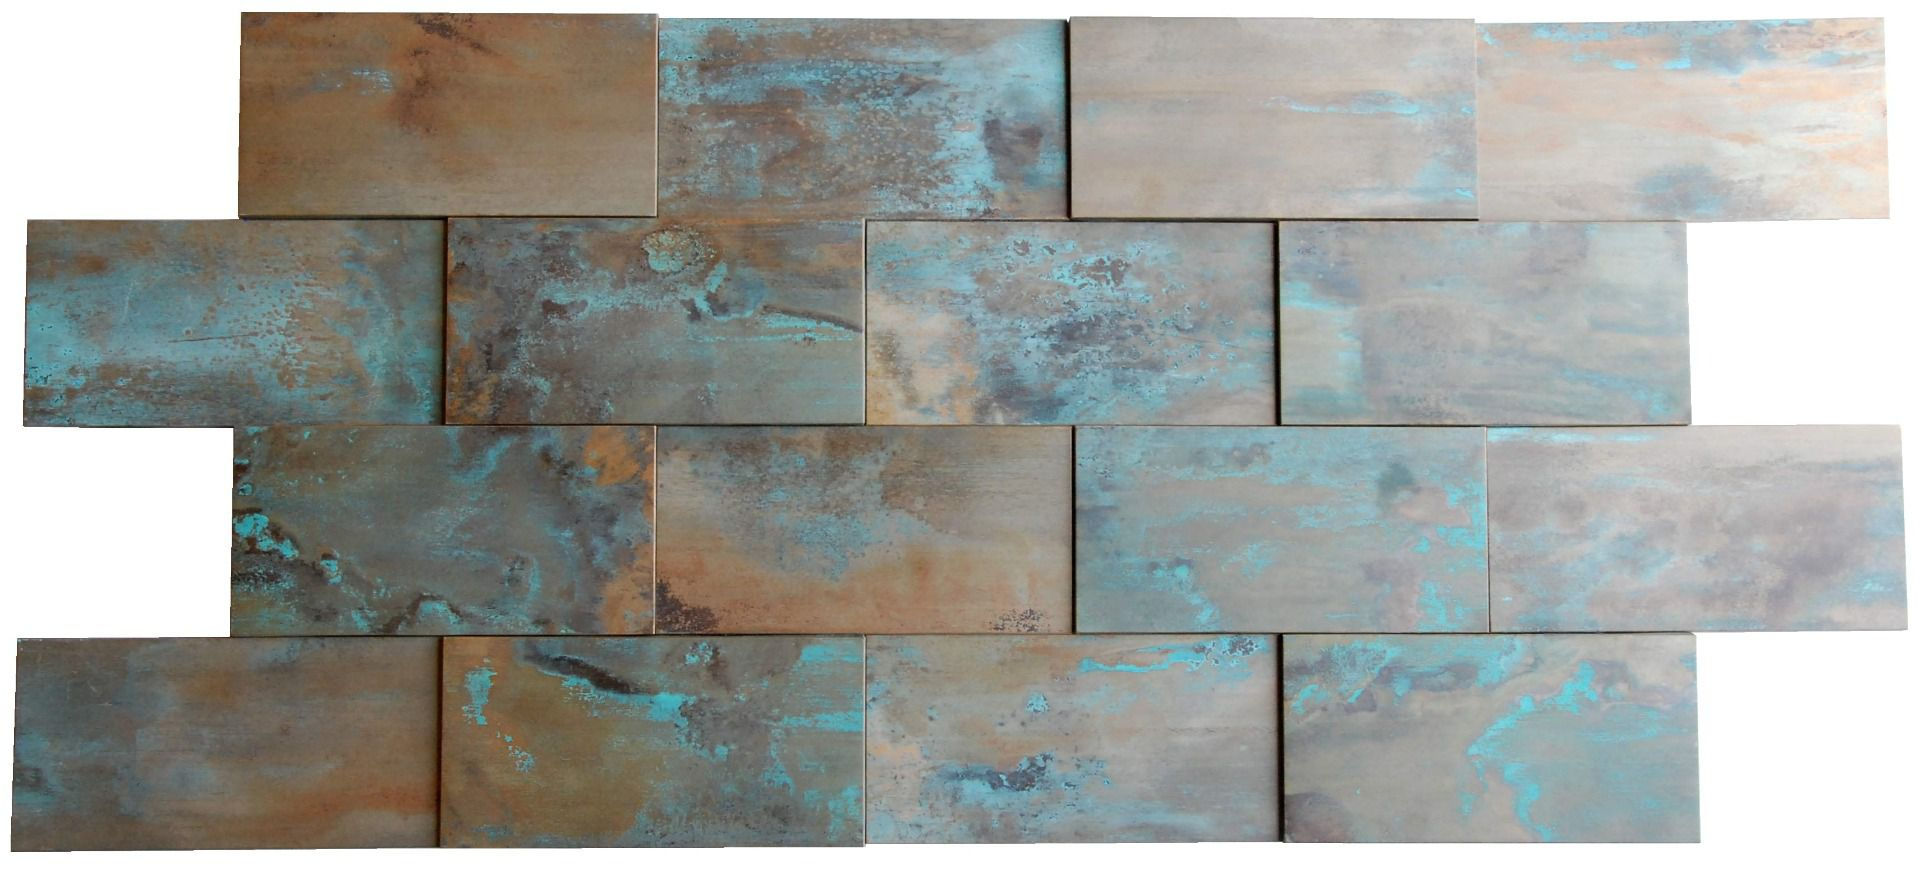 - 3D Patina Copper Brick Tile Fireplace Stair Riser Feature Wall Decor